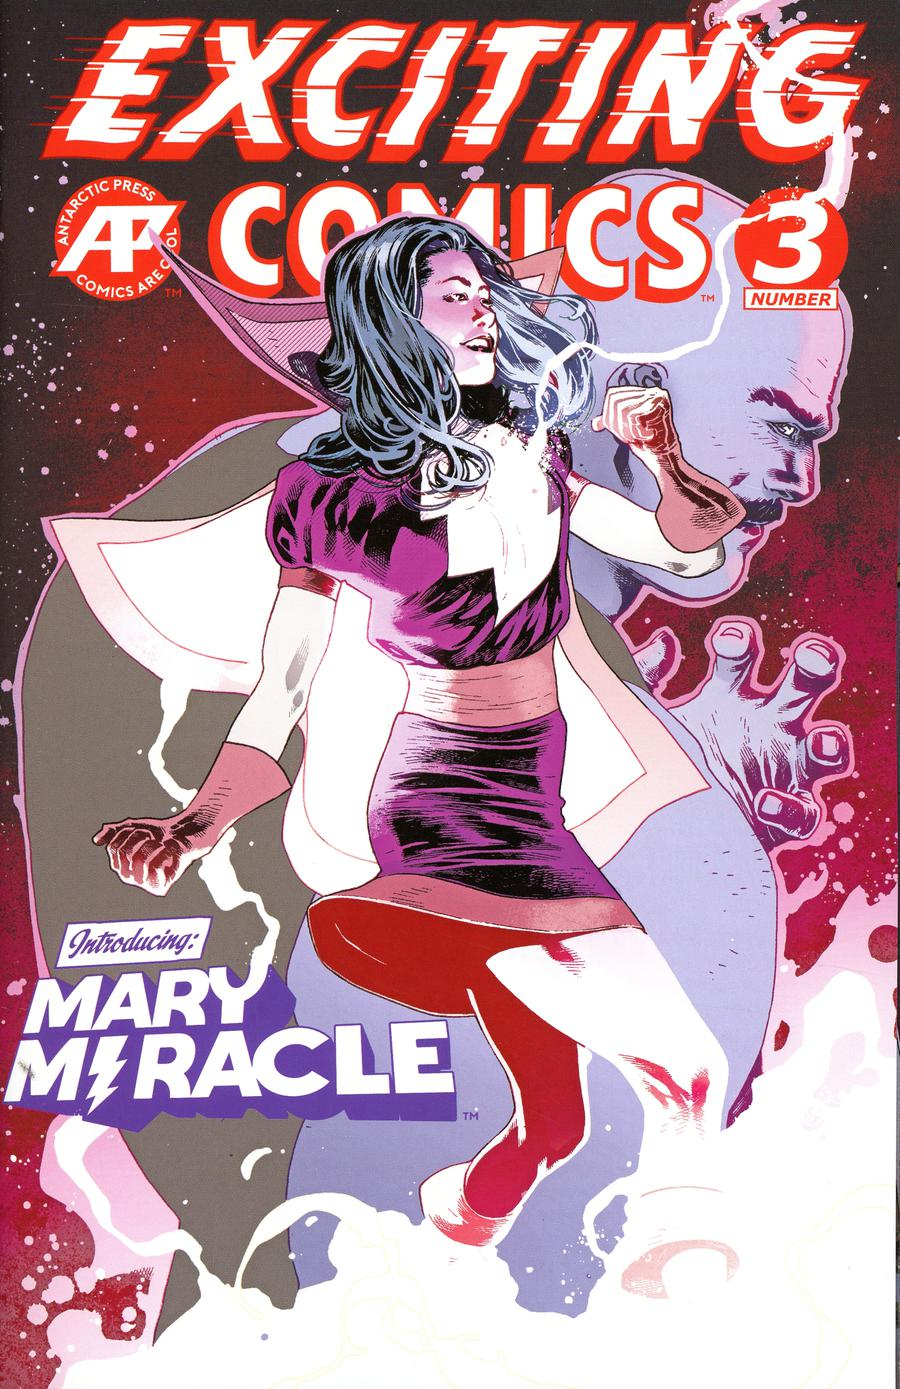 Exciting Comics Vol 2 #3 Cover B Variant Mary Miracle Cover